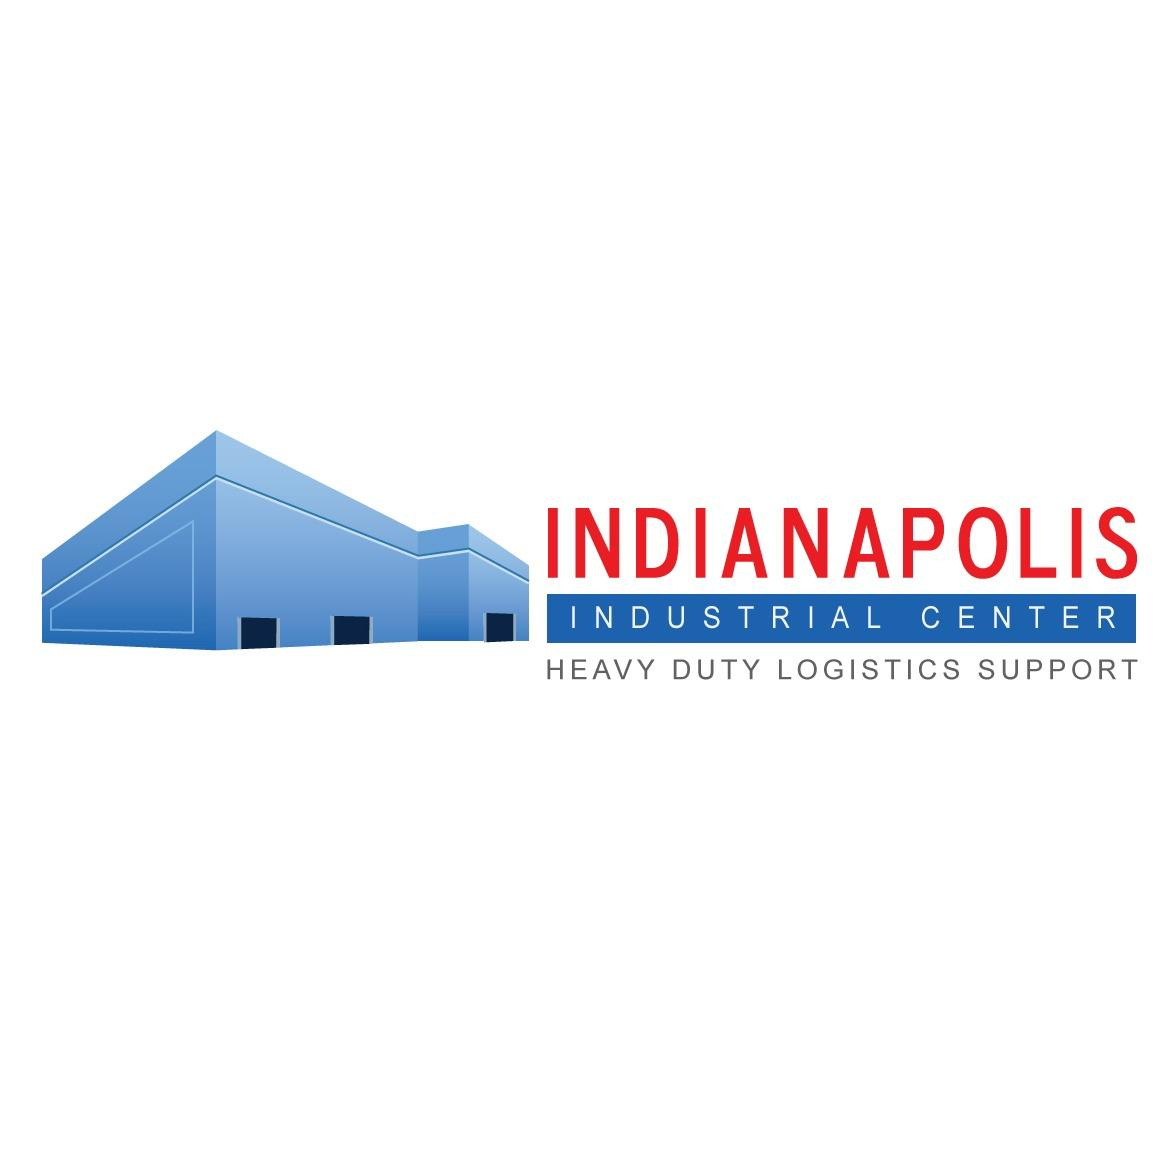 Indianapolis Industrial Center